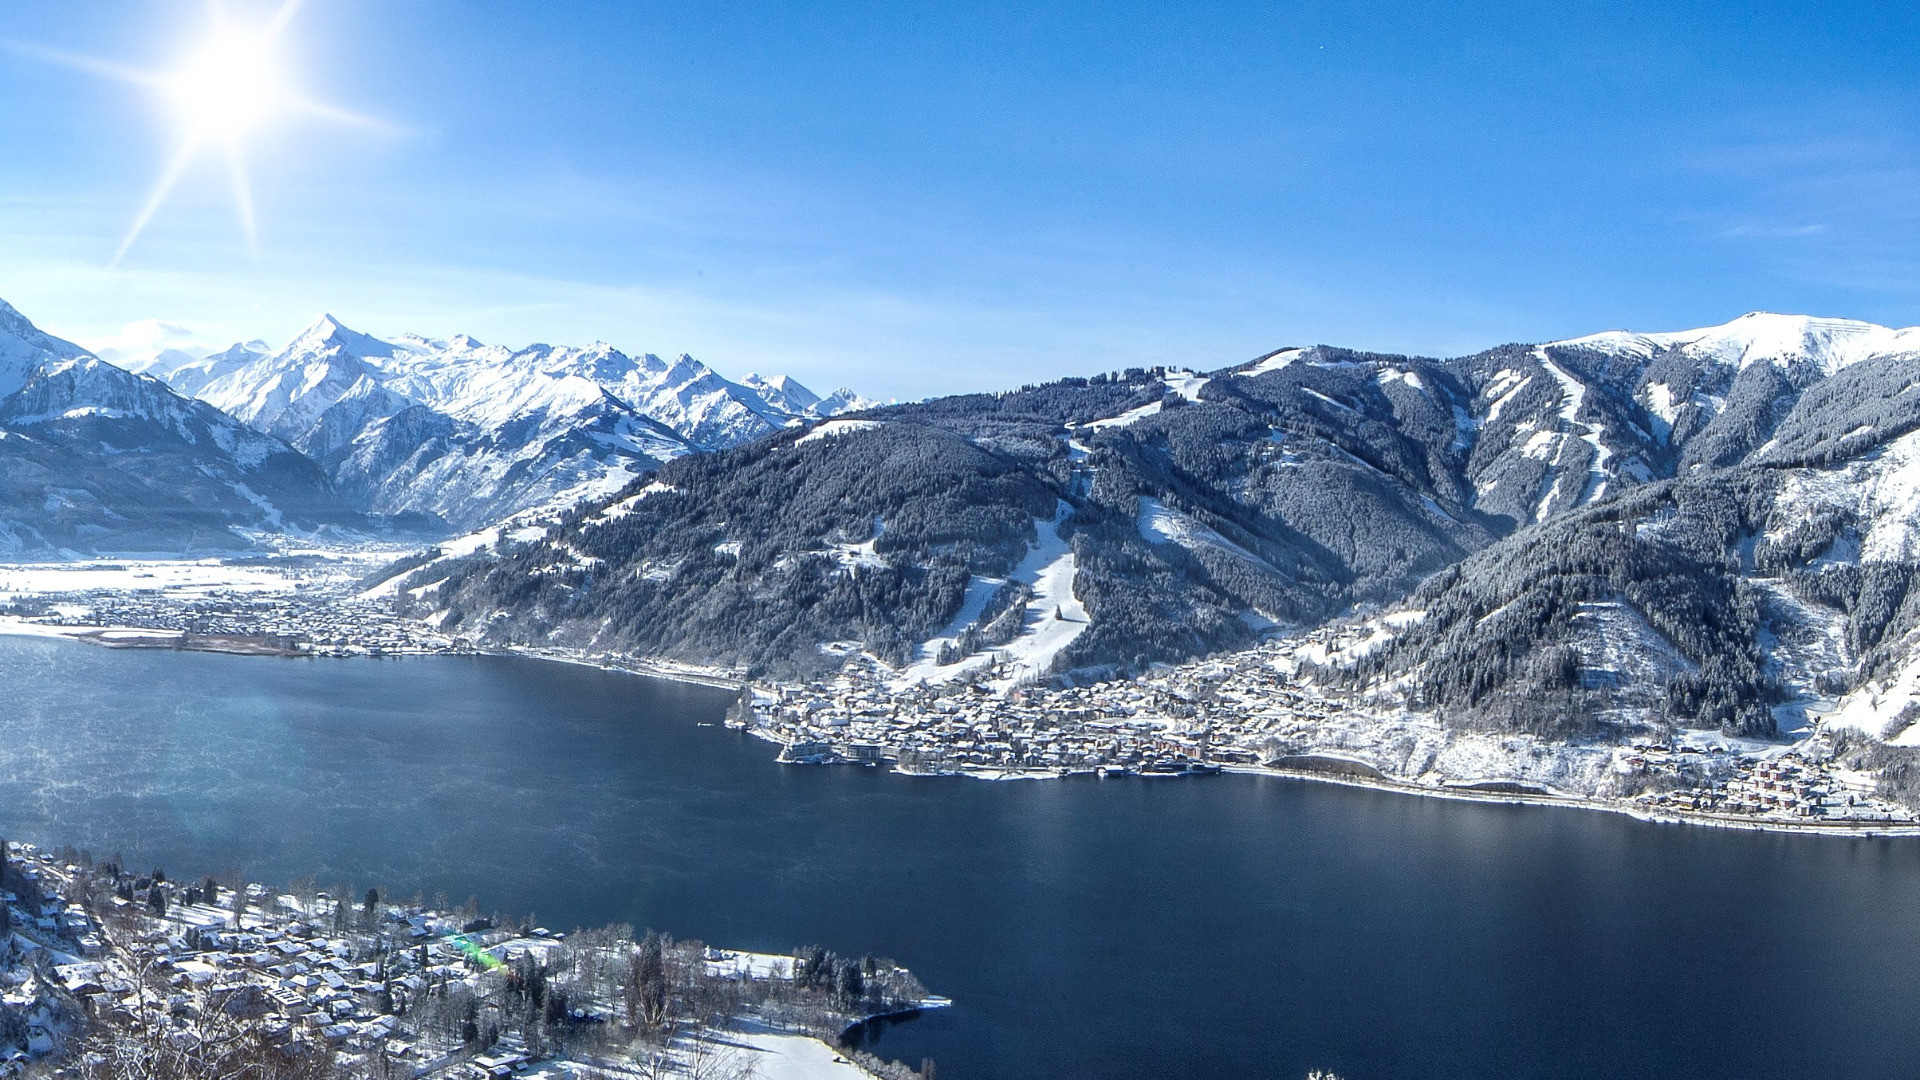 Zell am See-Kaprunundefined